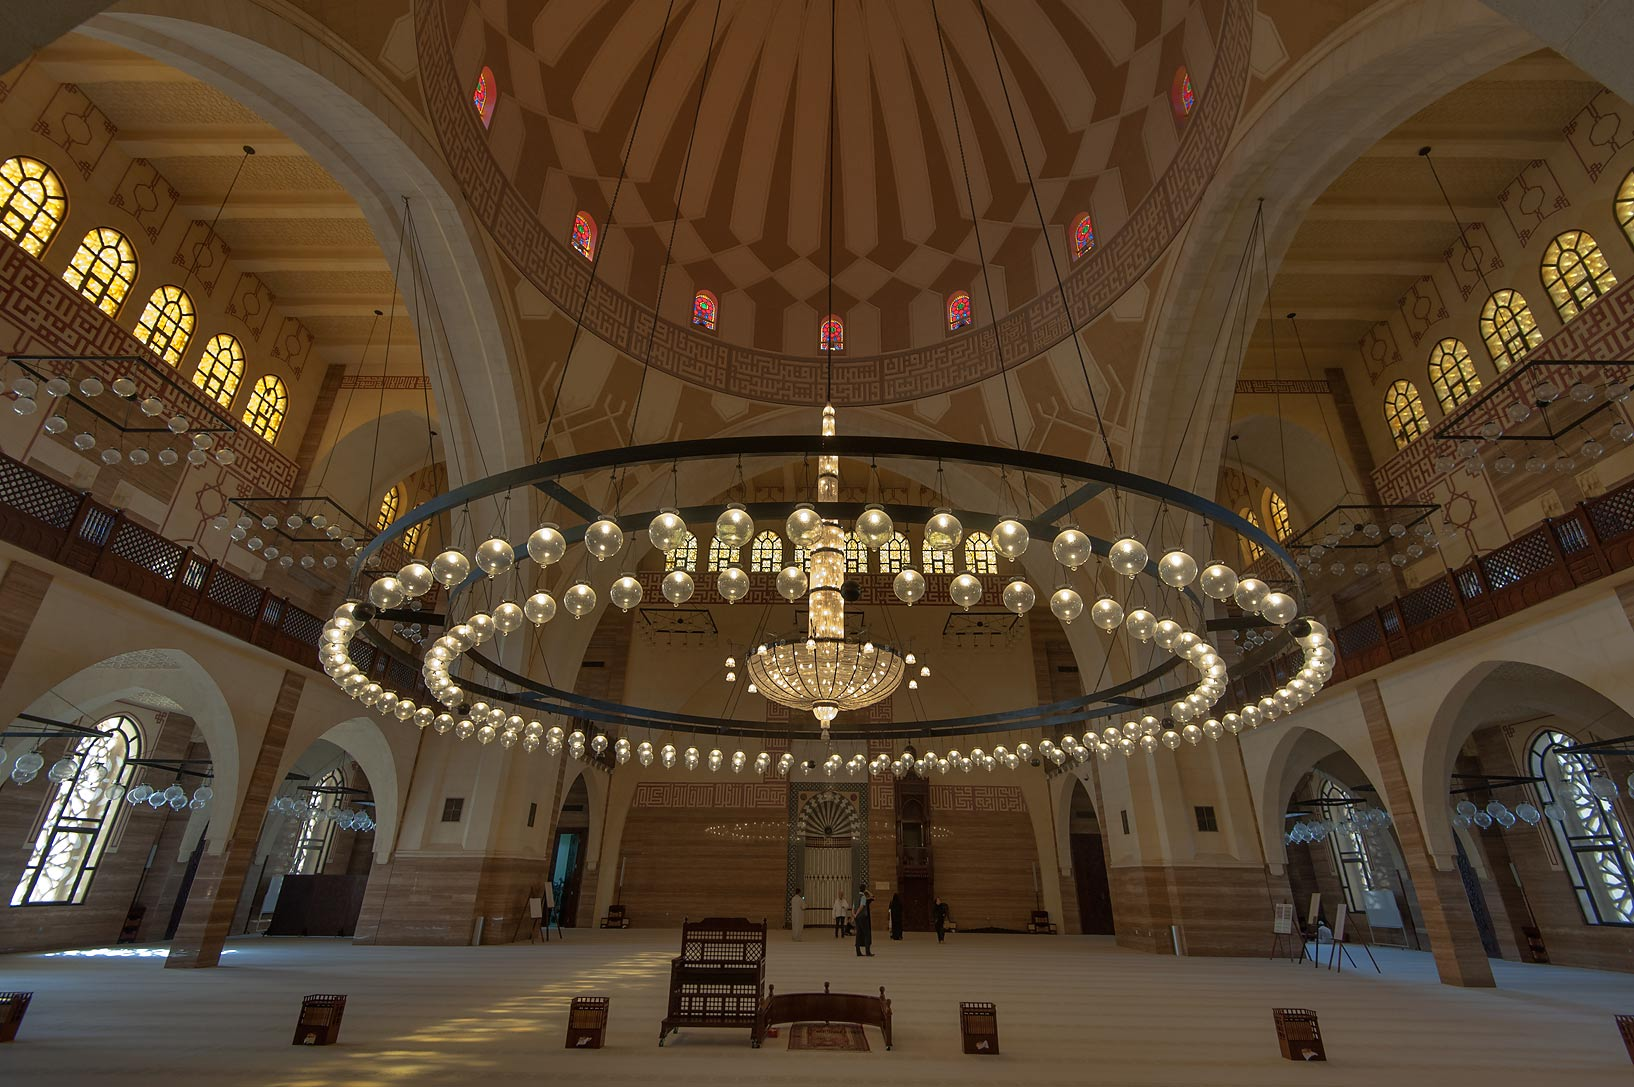 Photo 1543 01 Central Chandelier In Ahmed Al Fateh Mosque